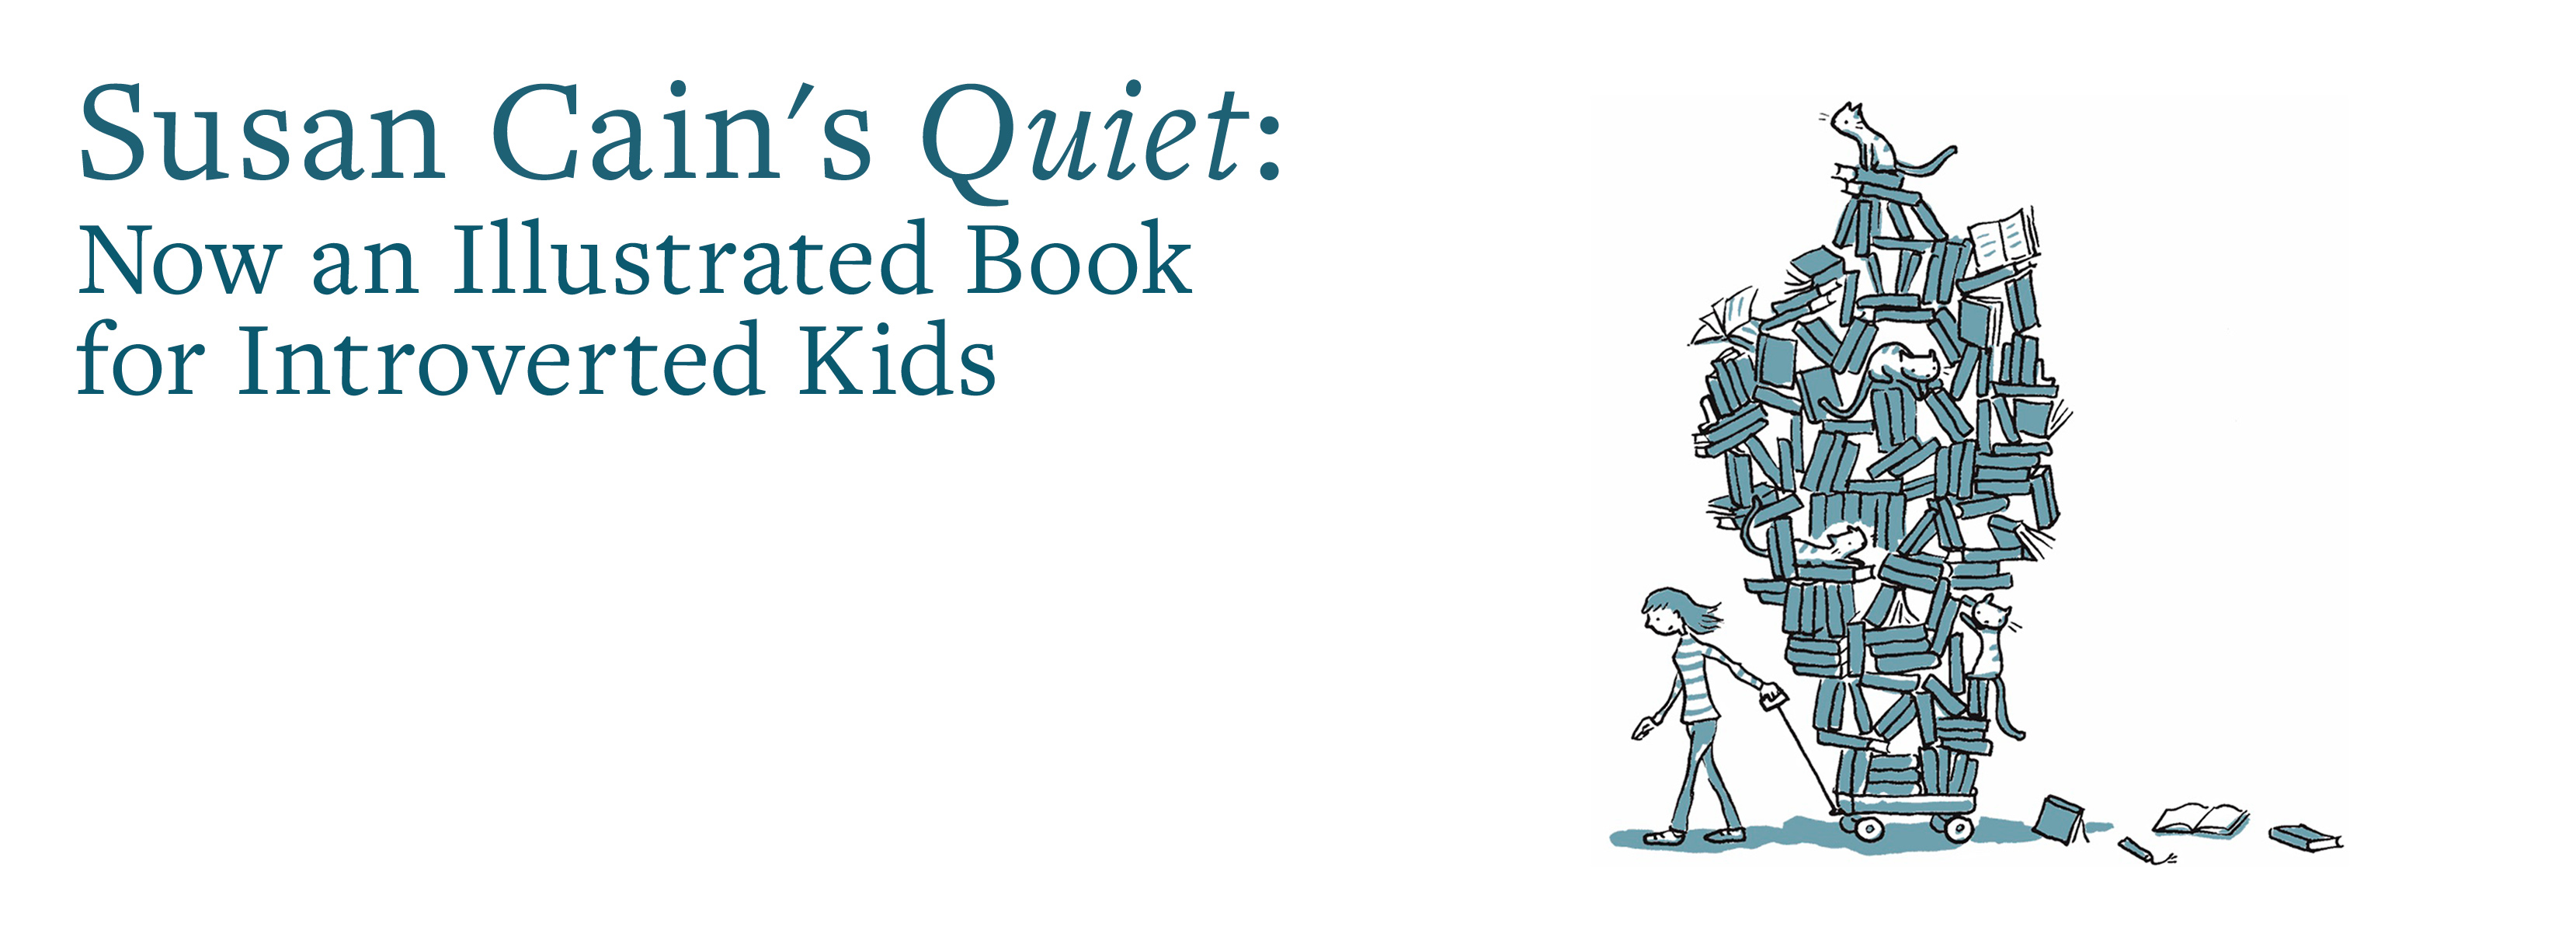 Cartoon of girl hauling load of books | Susan Cain's Quiet: Now an Illustrated Book for Introverted Kids